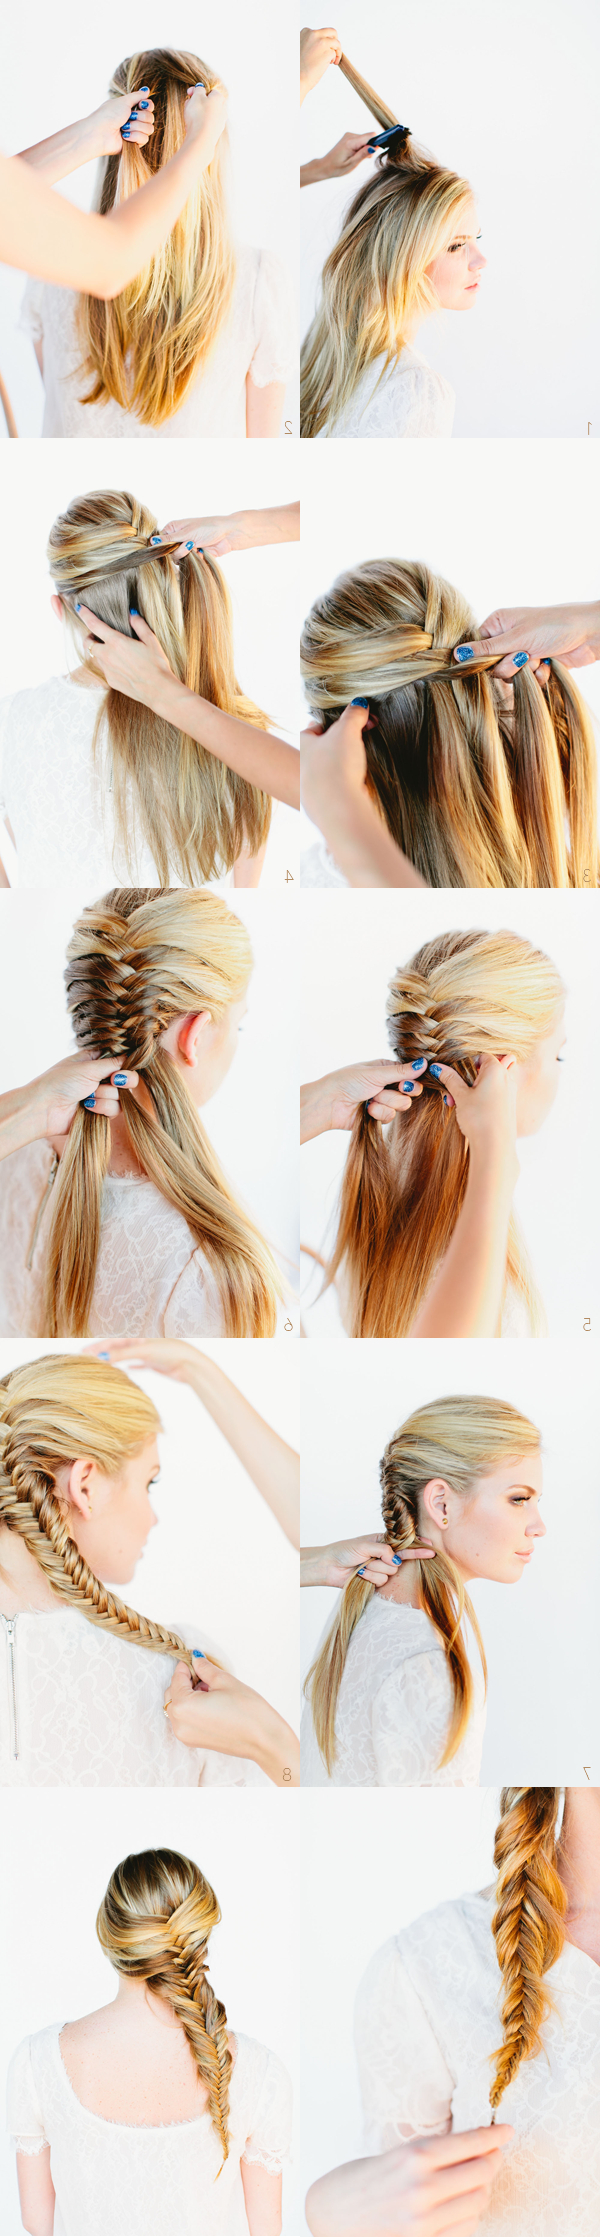 Trendy Rope And Fishtail Braid Hairstyles With Regard To Top 25 Braided Hairstyle Tutorials You'll Totally Love (Gallery 20 of 20)